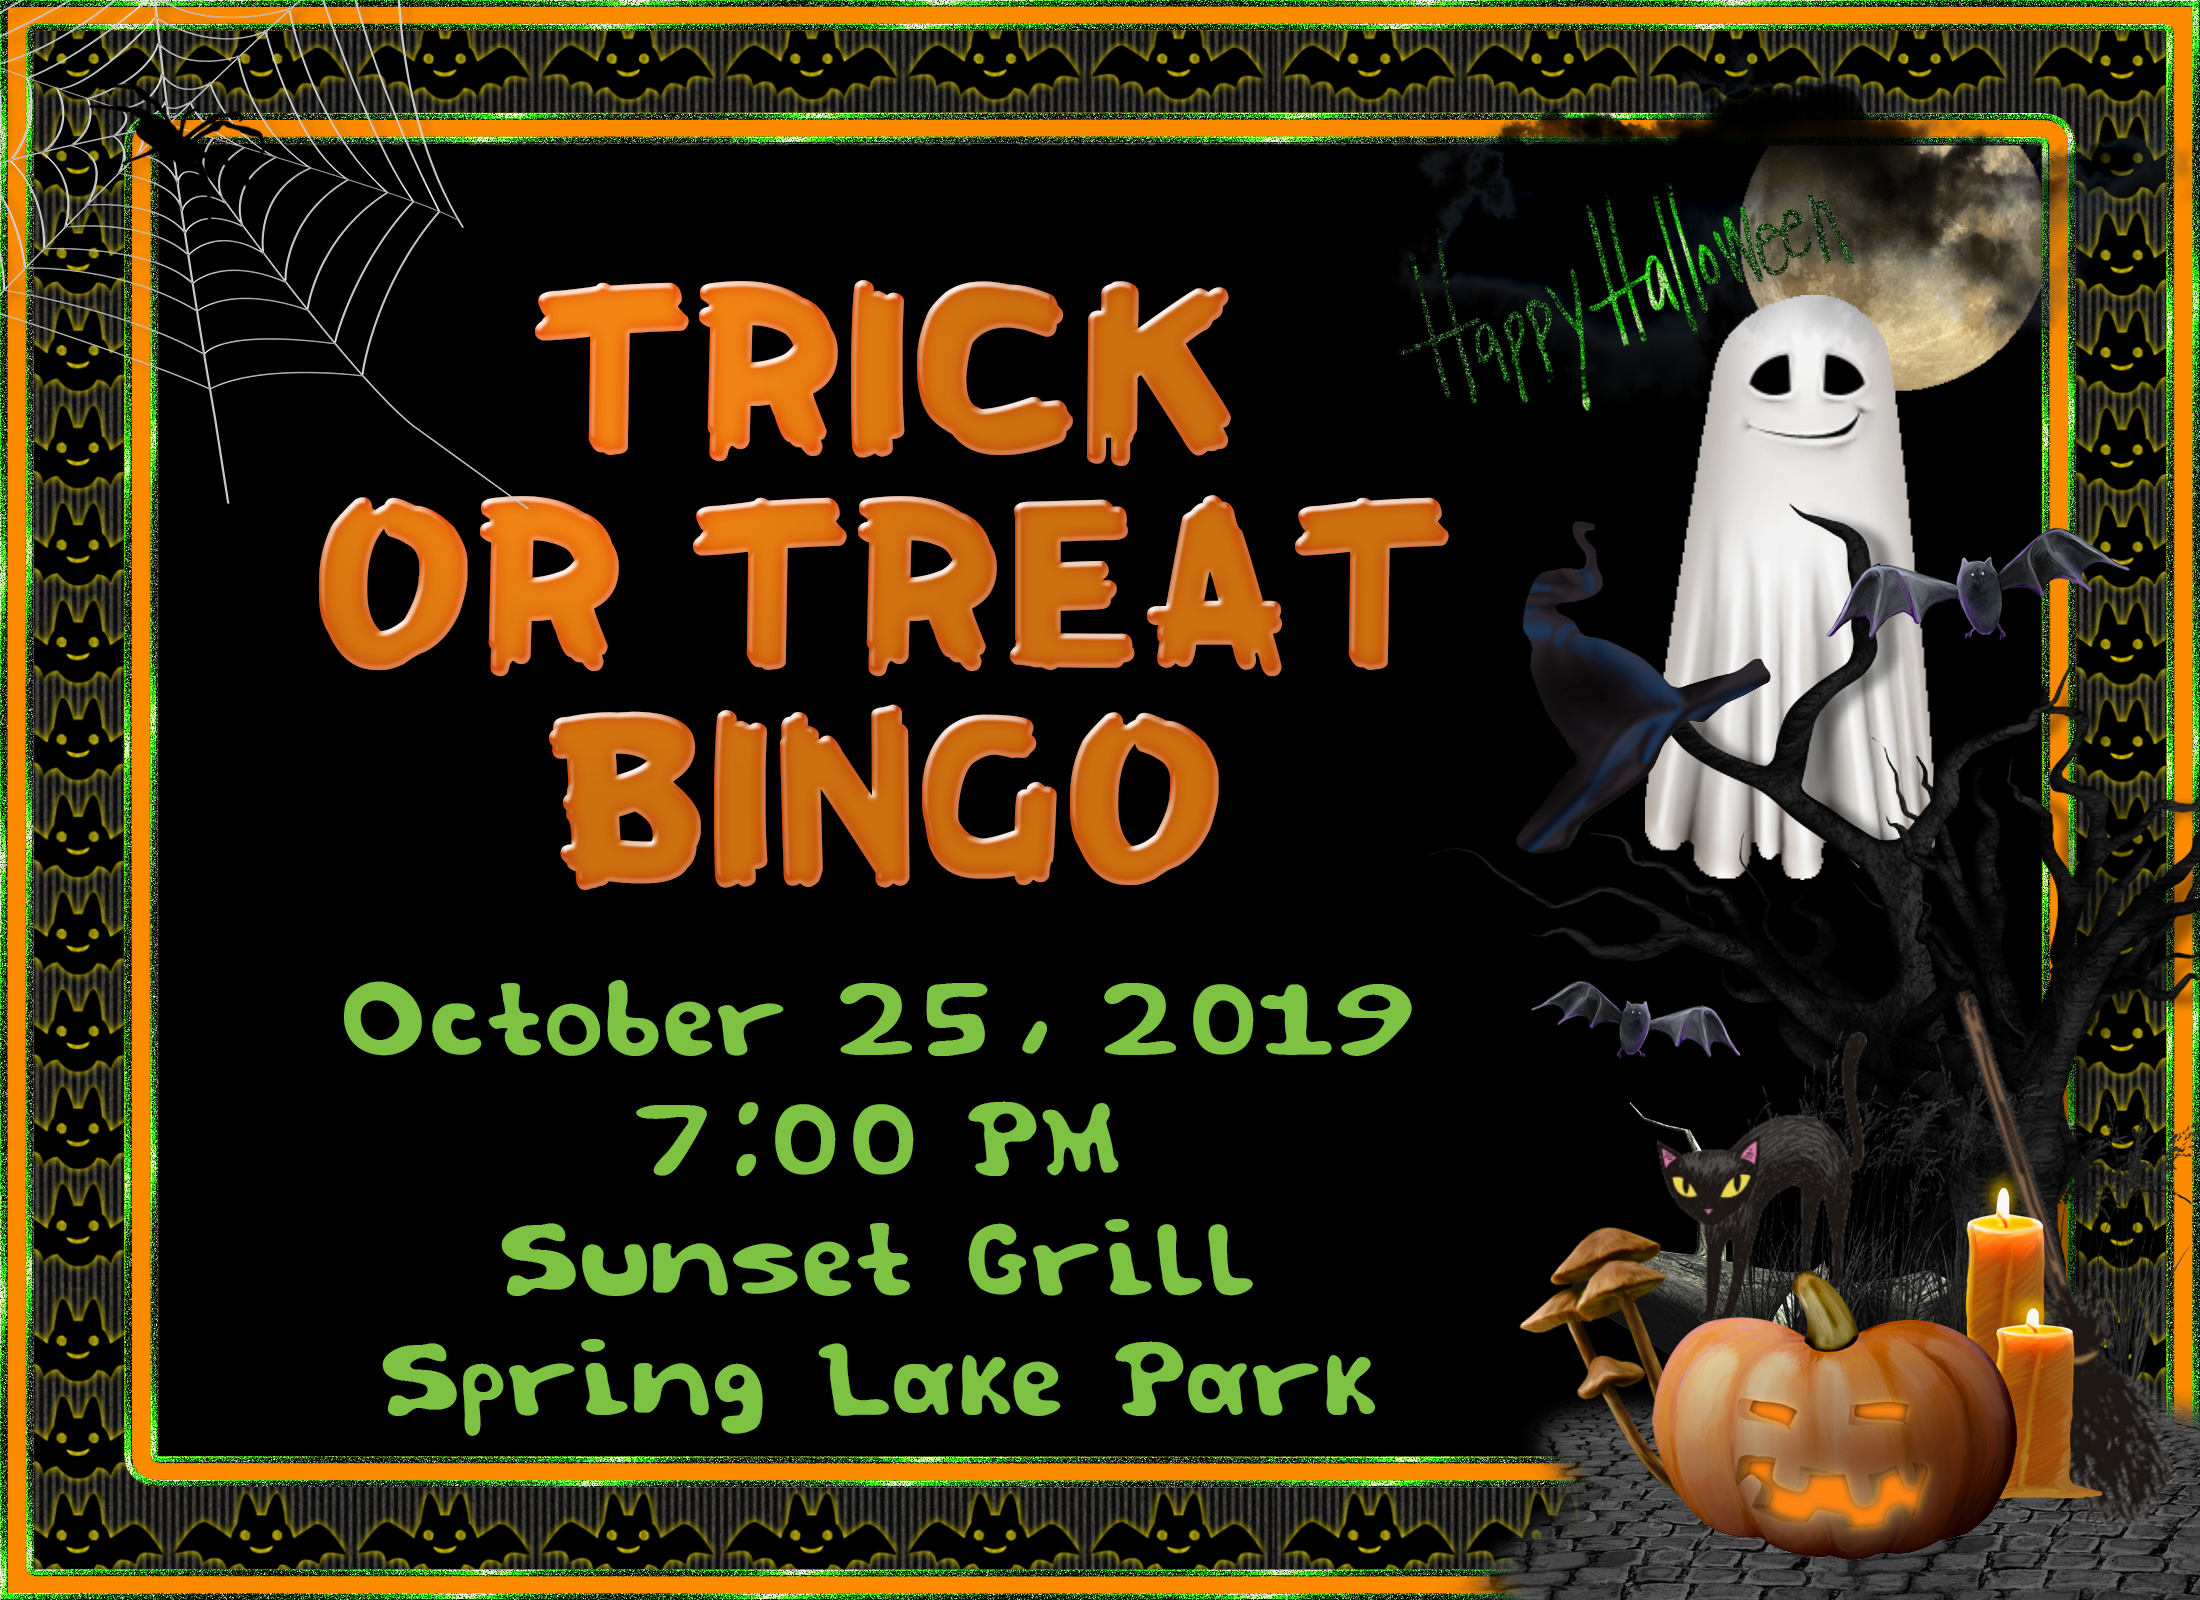 Trick Or Treat Bingo, Sunset Grill, 10/25/19